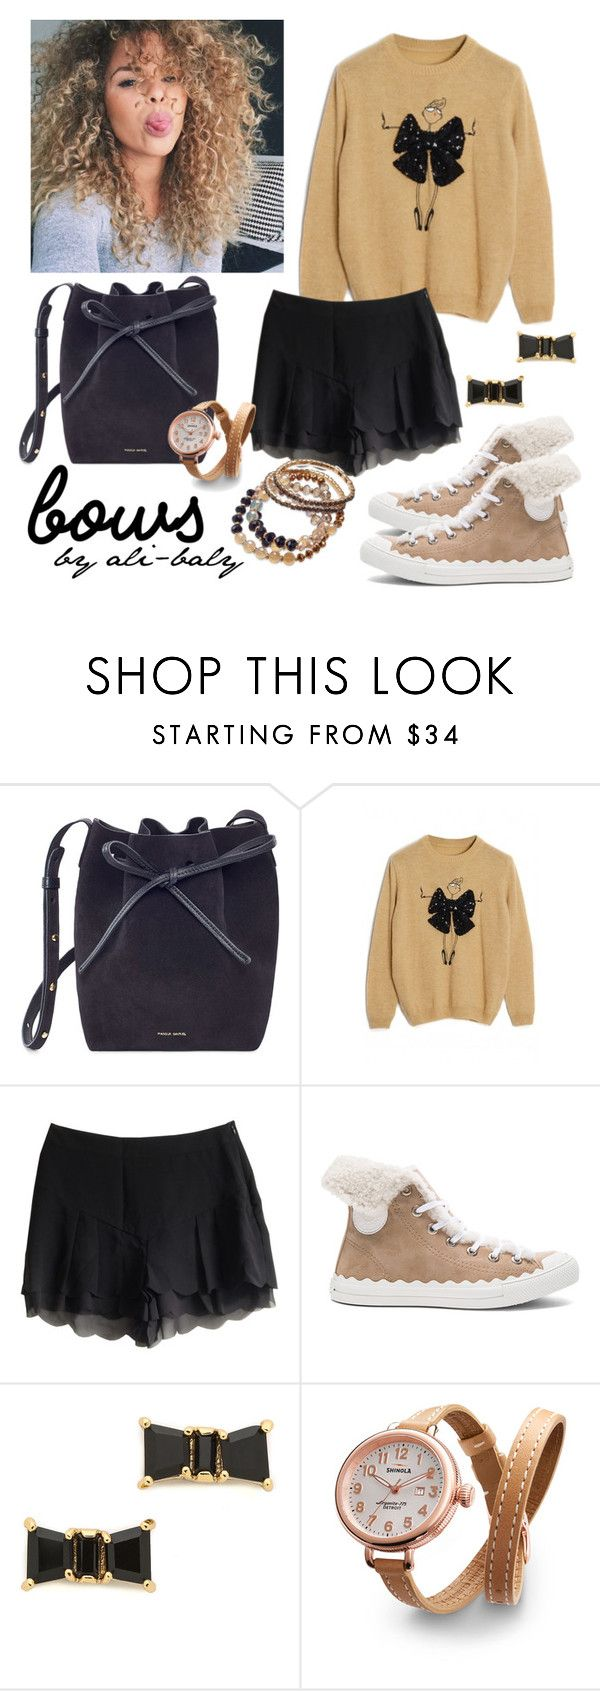 """""""Untitled #669"""" by ali-baly ❤ liked on Polyvore featuring Mansur Gavriel, Chloé, Kate Spade, Shinola and INC International Concepts"""